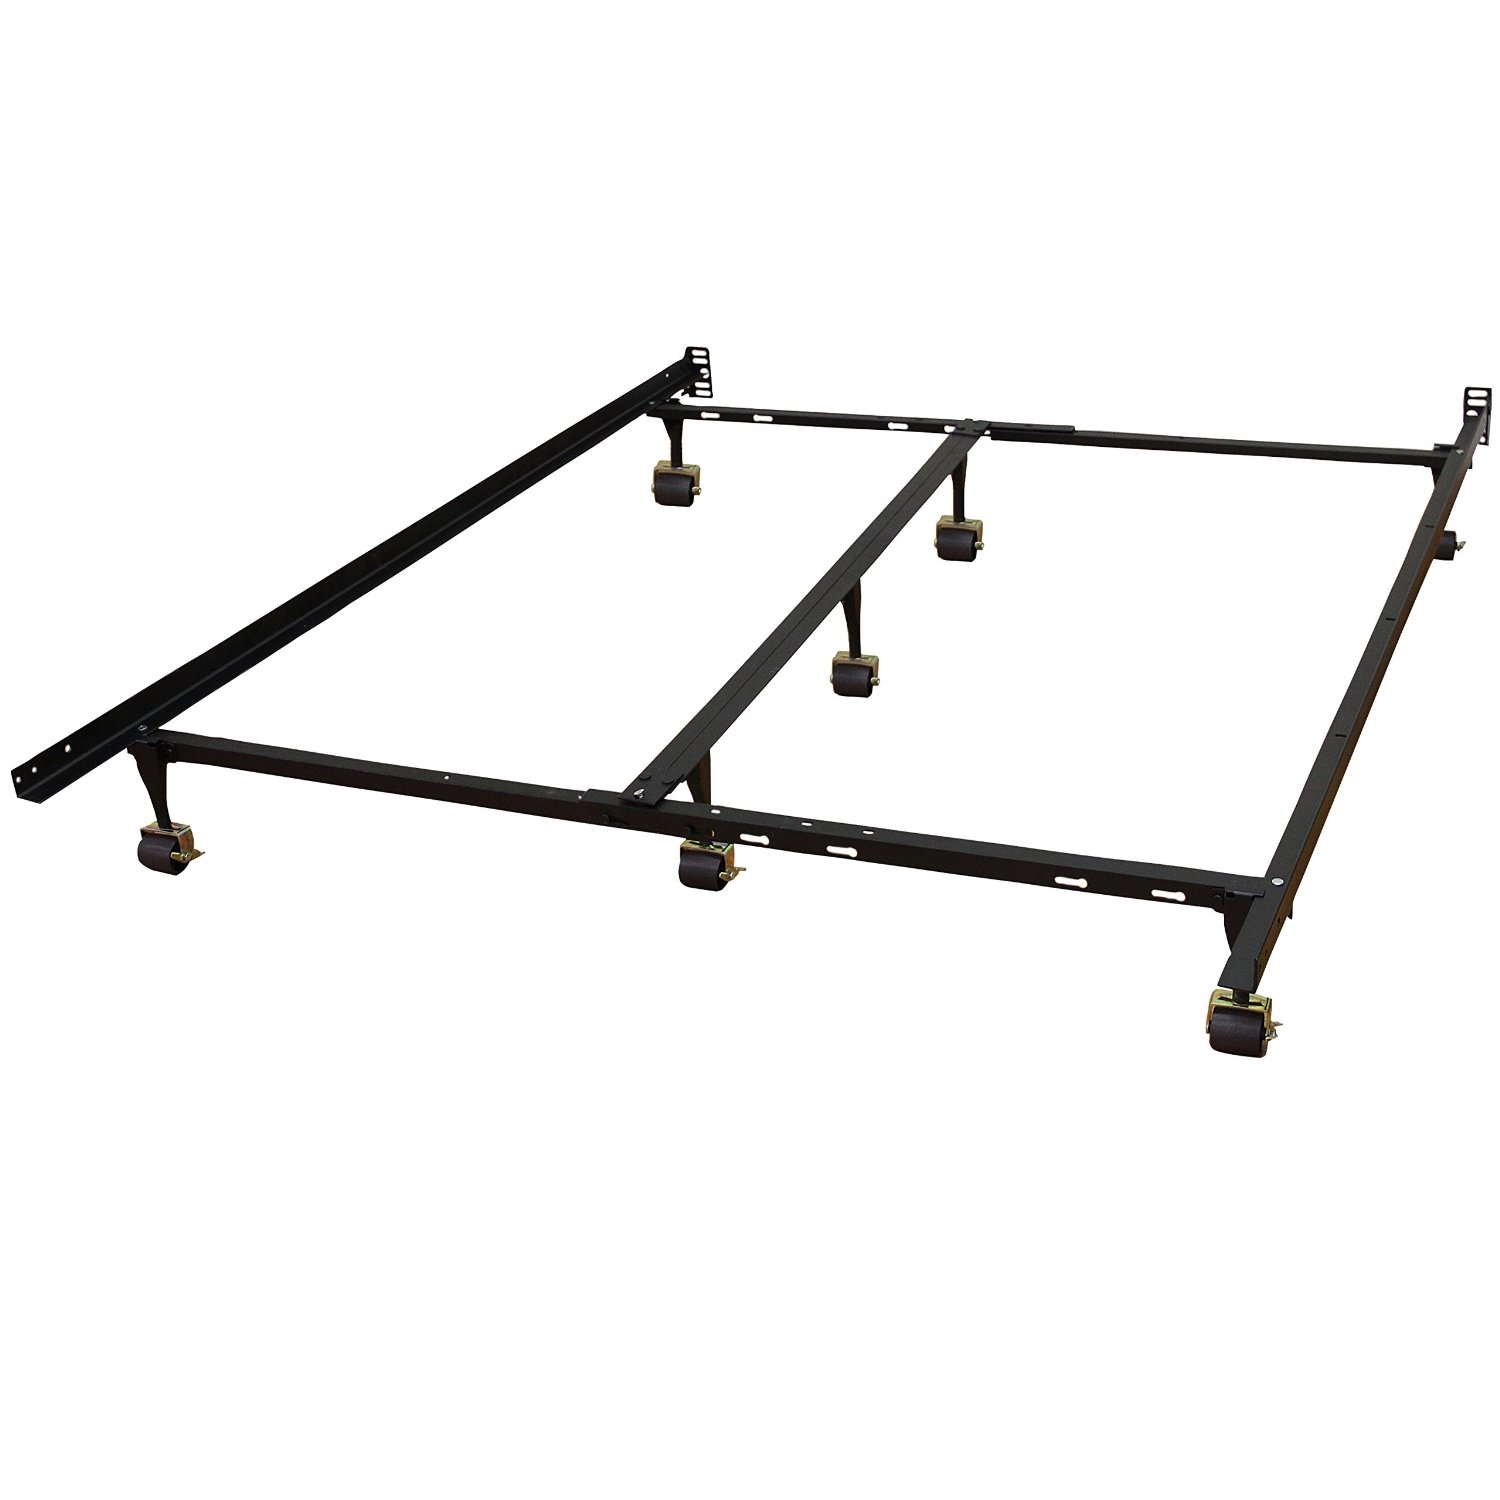 universal metal bed frame adjusts to fit twin full queen king cal king twin xl - California King Metal Bed Frame